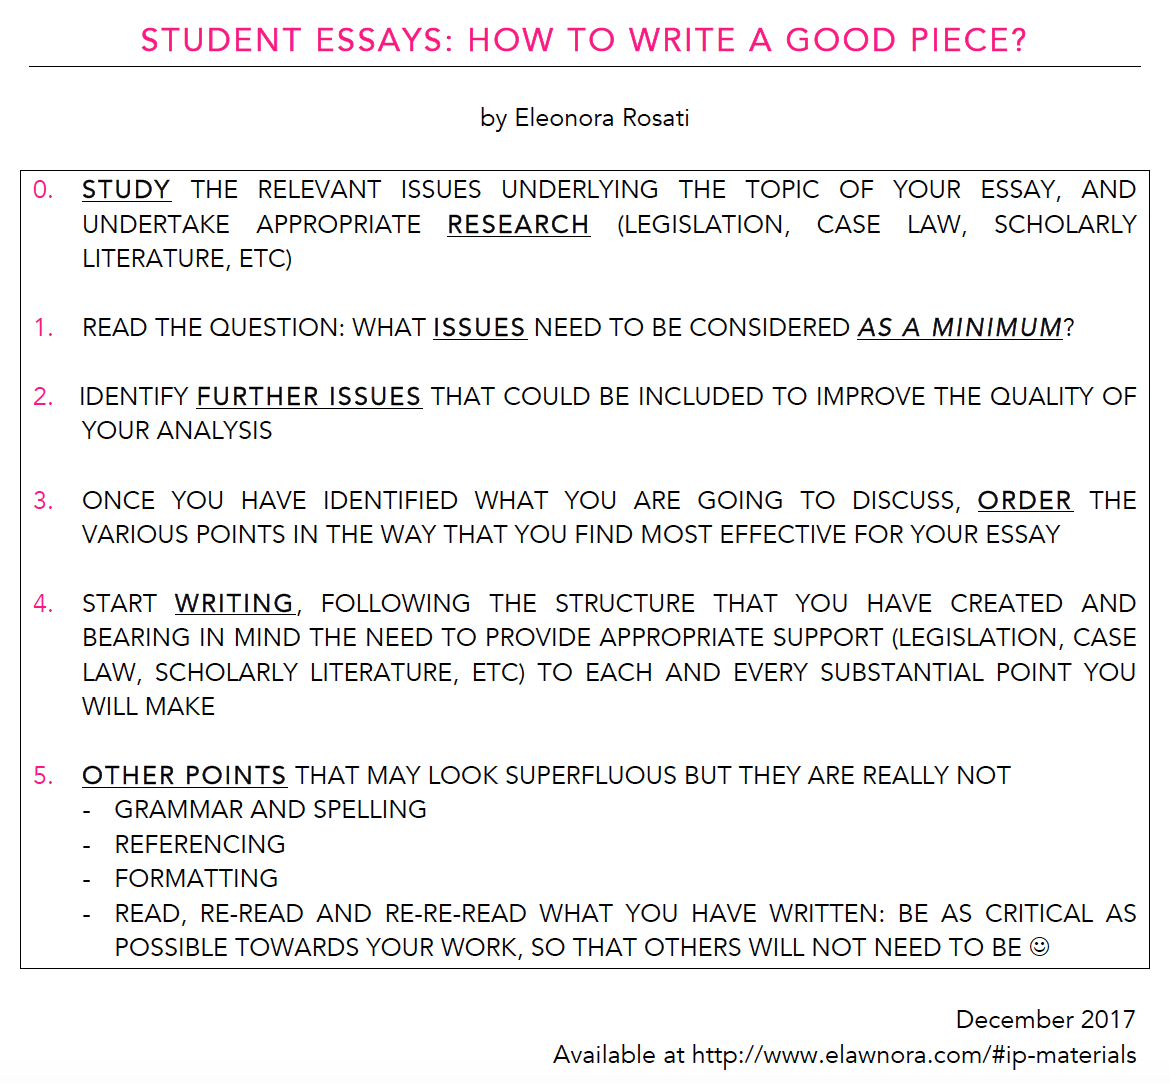 What makes a good college essay